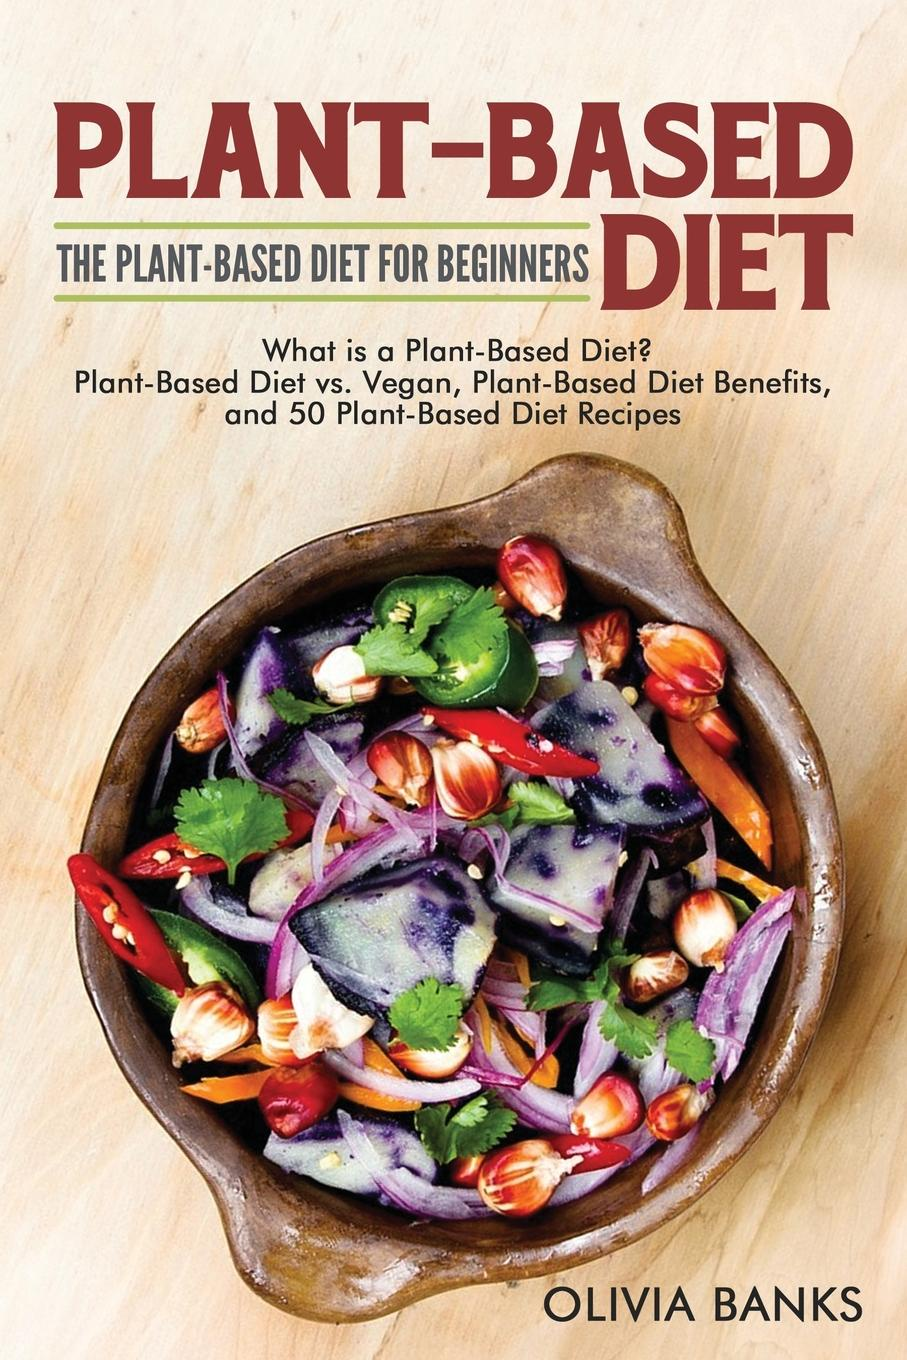 Olivia Banks Plant-Based Diet. The Plant-Based Diet for Beginners: What is a Plant-Based Diet. Plant-Based Diet vs. Vegan, Plant-Based Diet Benefits, and 50 Plant-Based Diet Recipes